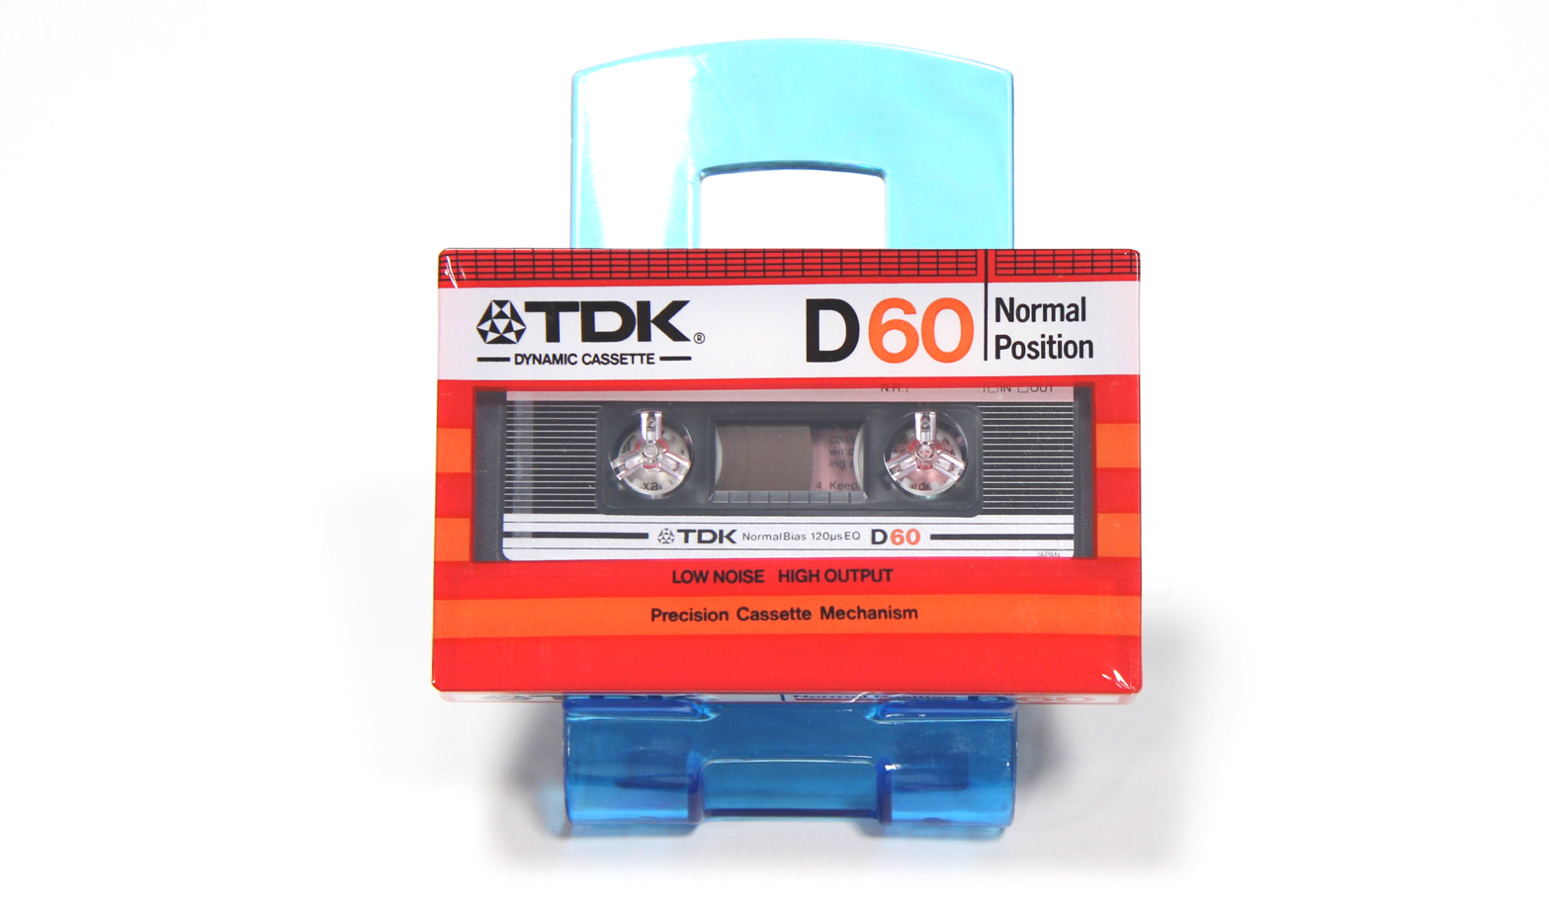 TDK D-60 Position Normal